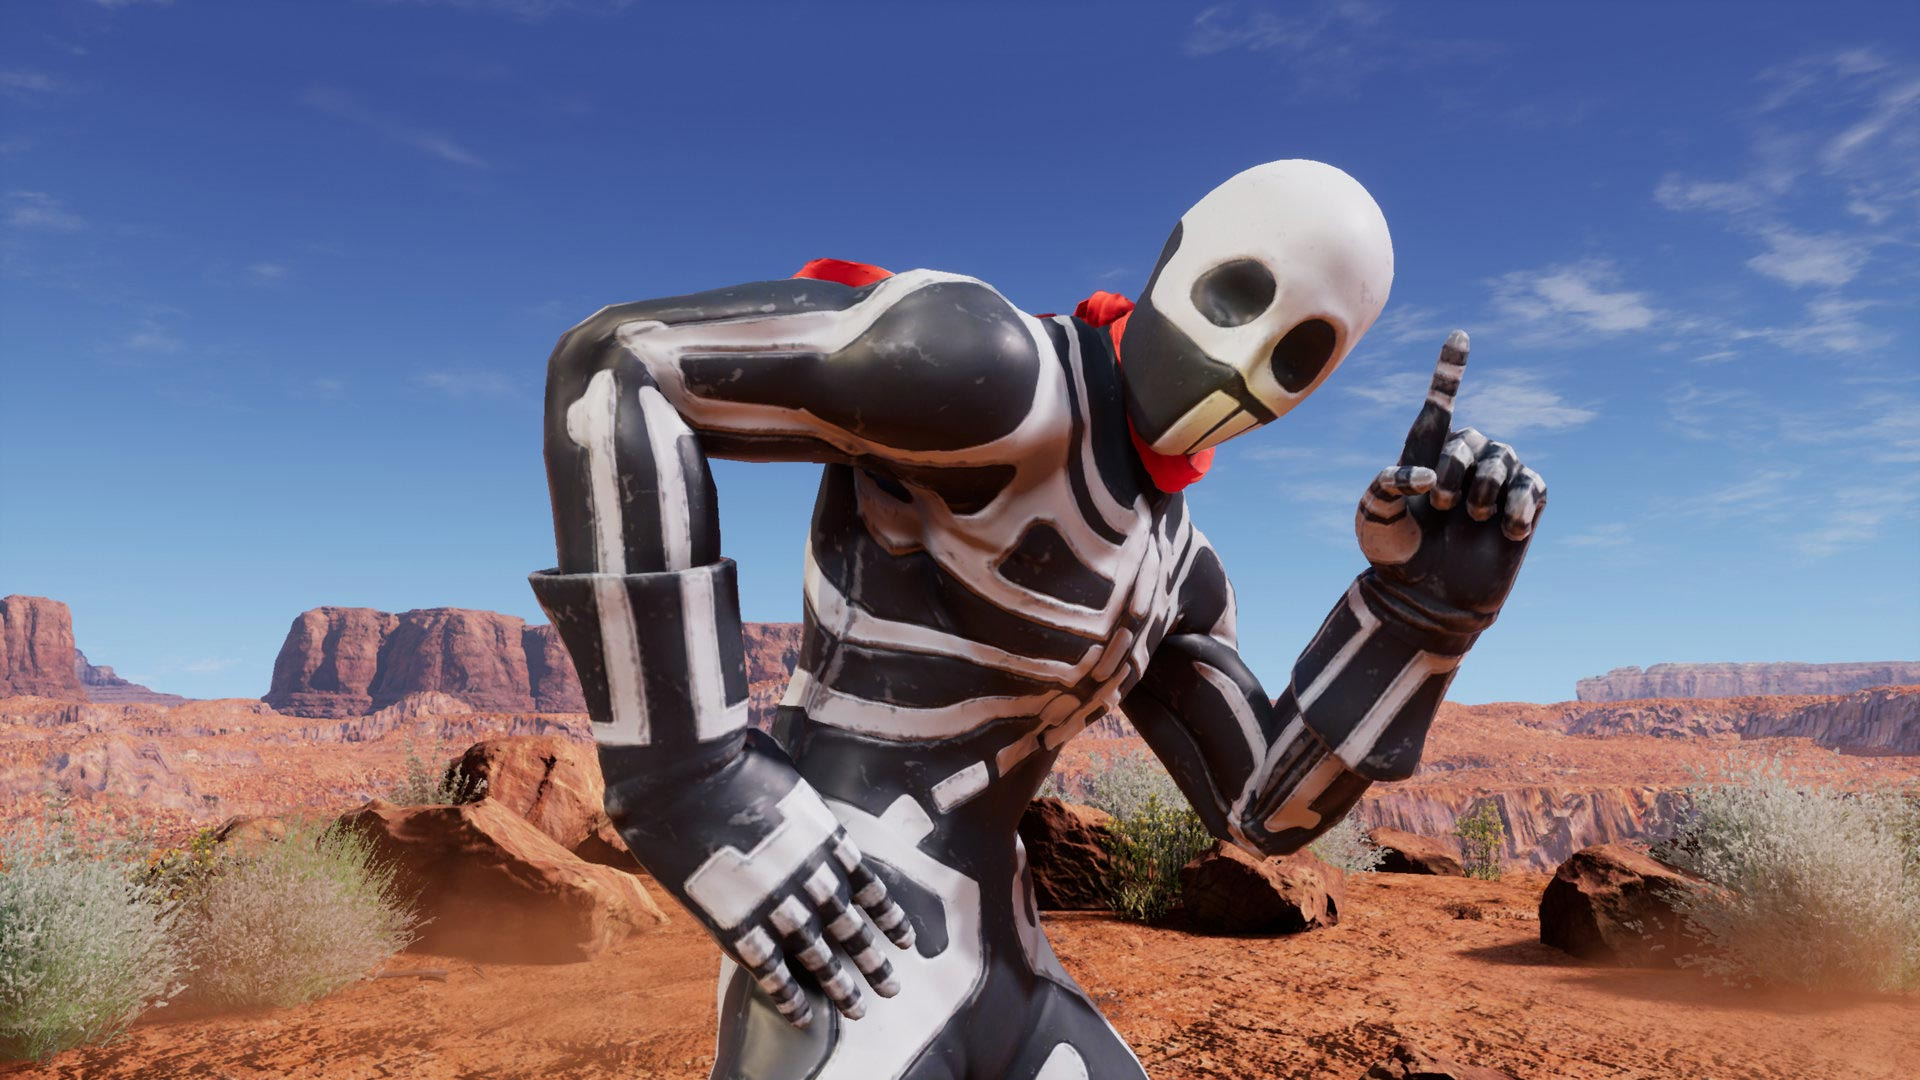 Fighting EX Layer launch screenshots 5 out of 10 image gallery